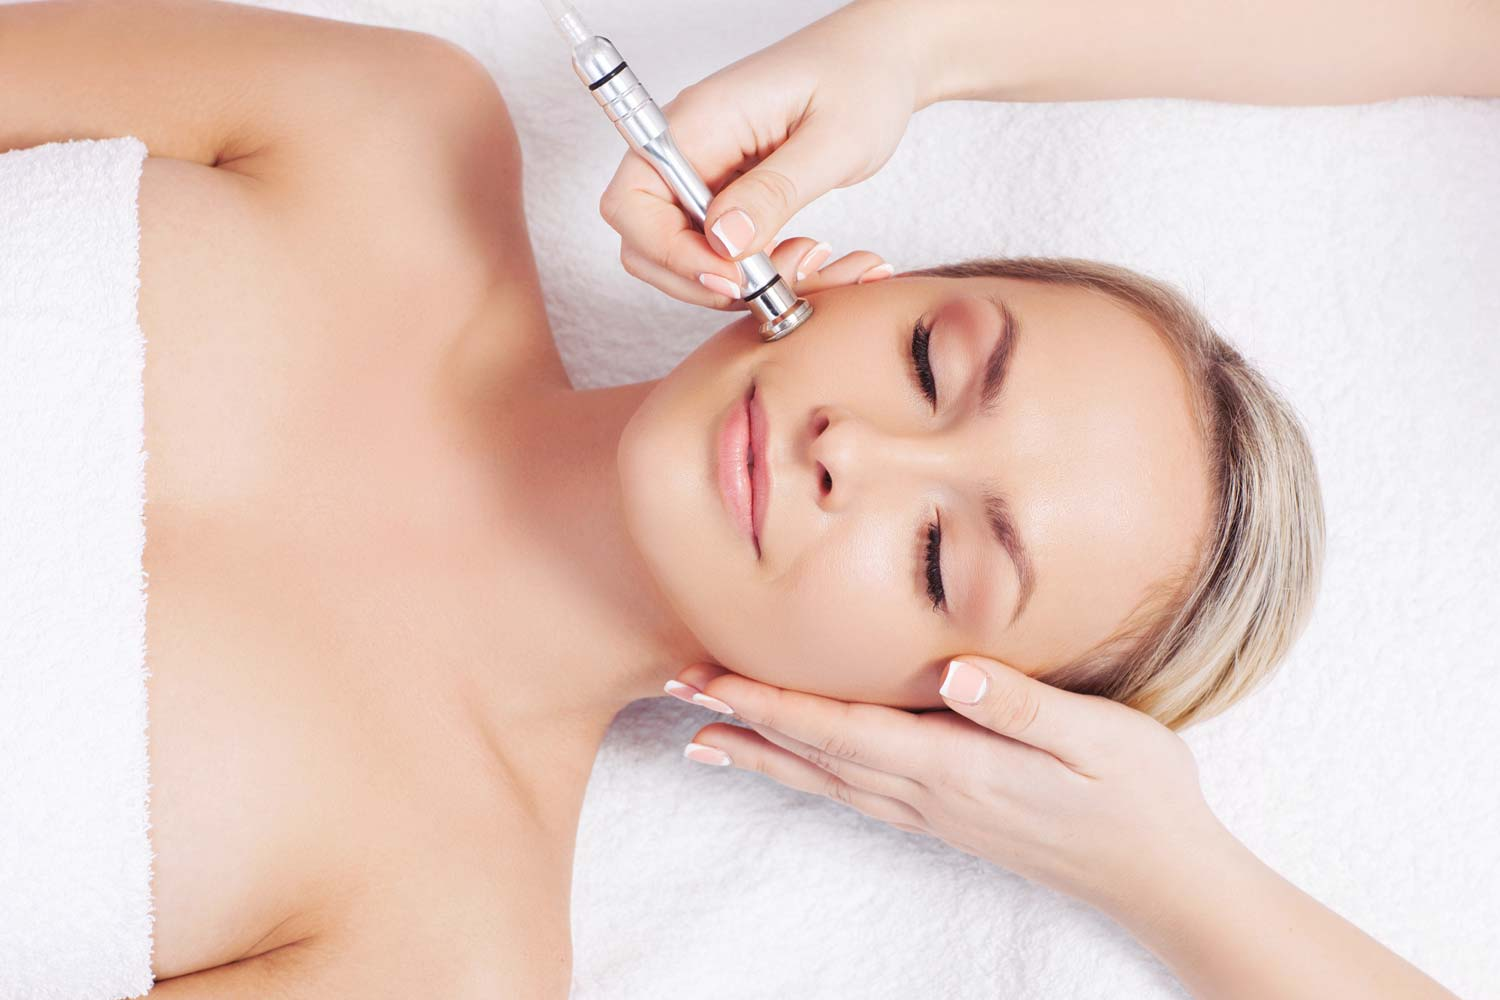 Kelly Ann's Beauty Microdermabrasion & Facial Treatments